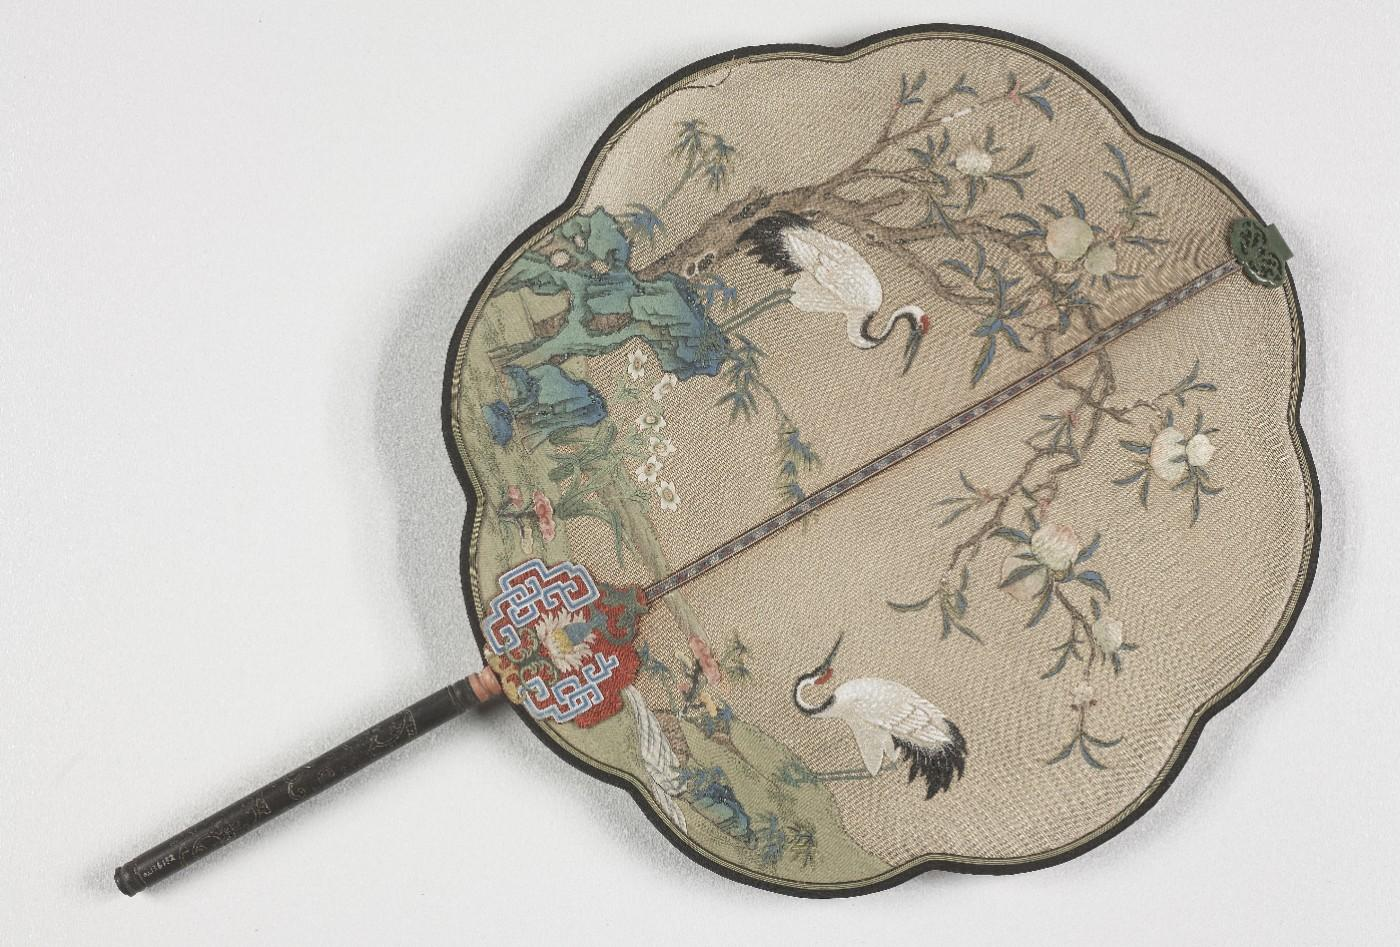 Lobed fan with cranes, peaches, and rocks